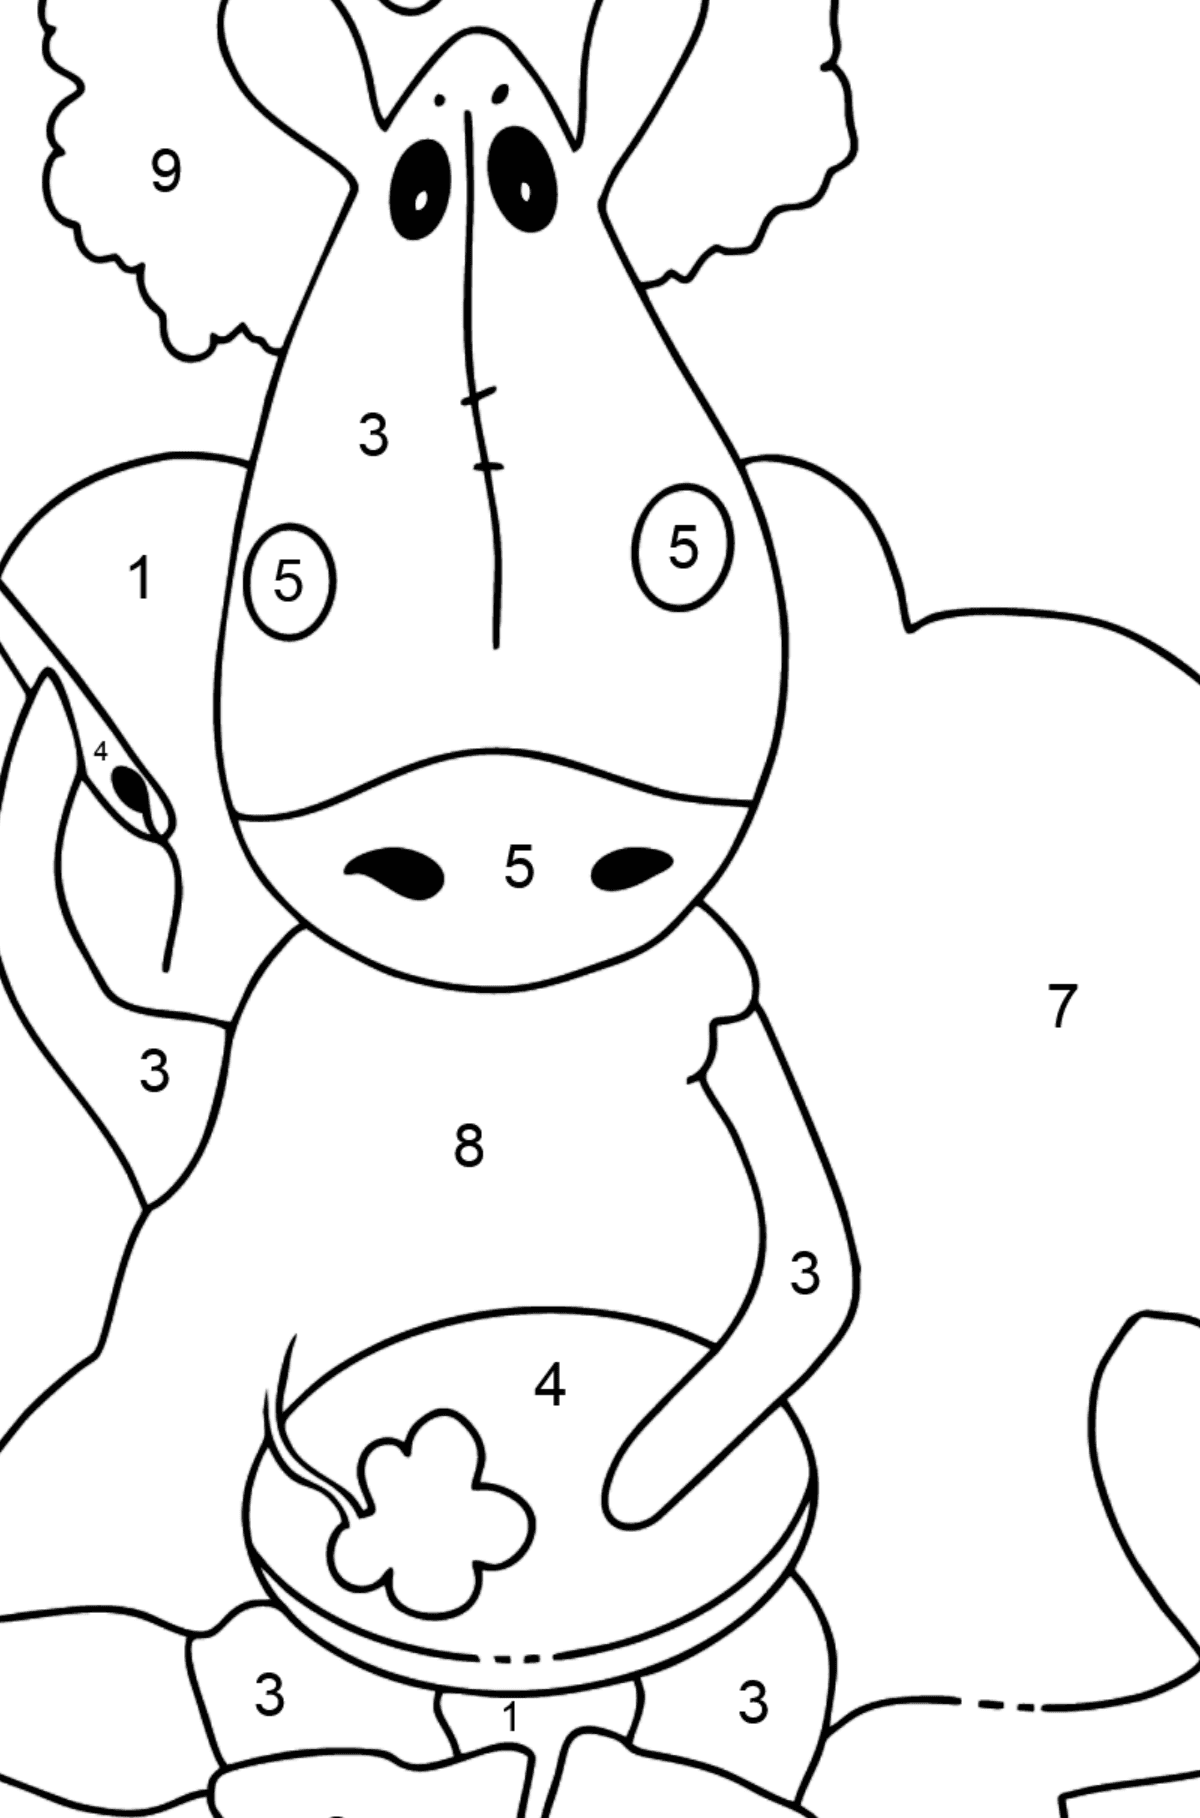 Simple coloring page a horse on the sofa - Coloring by Numbers for Kids